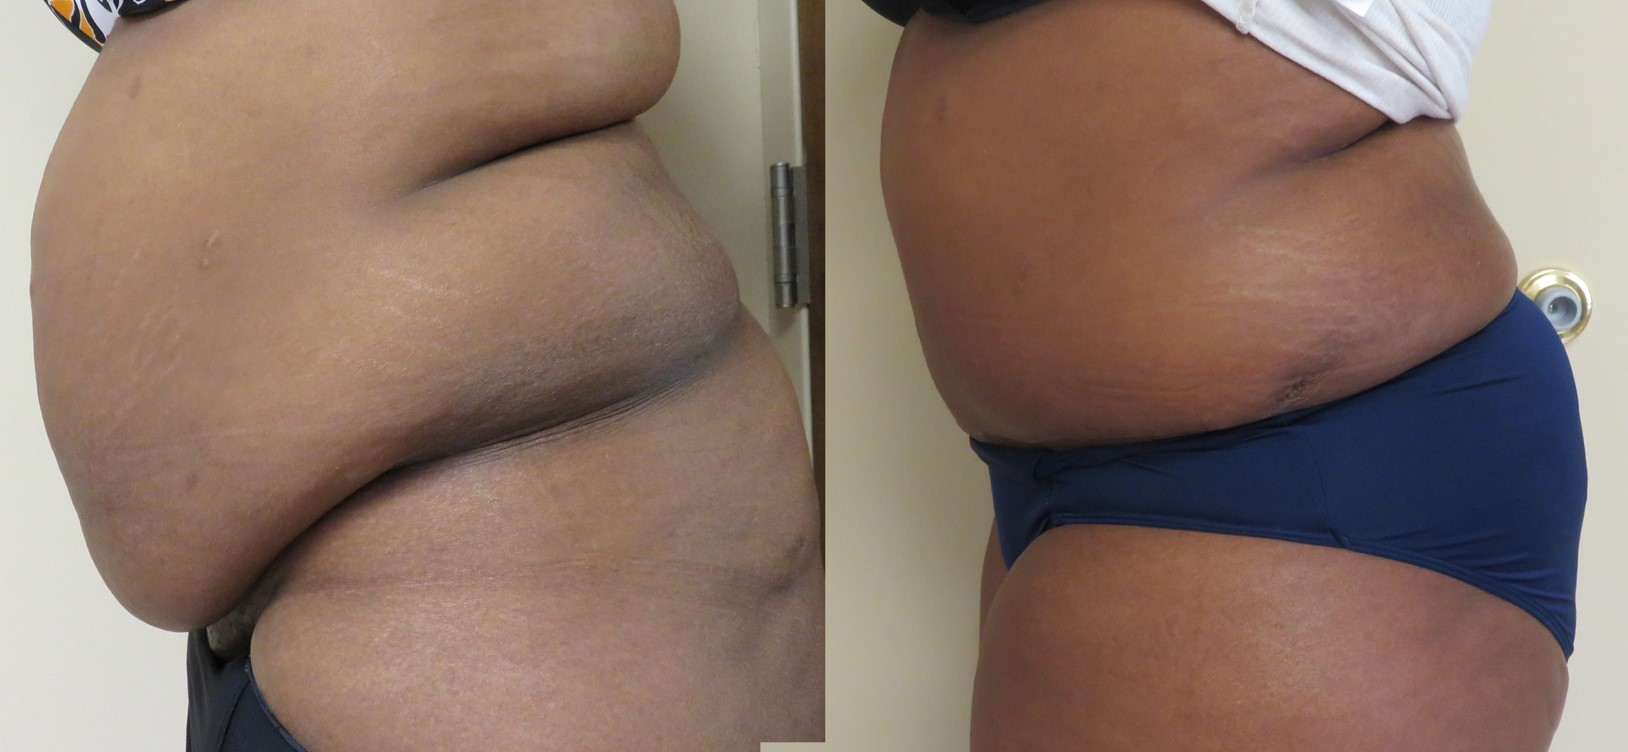 How much pain is associated with a Tummy Tuck?